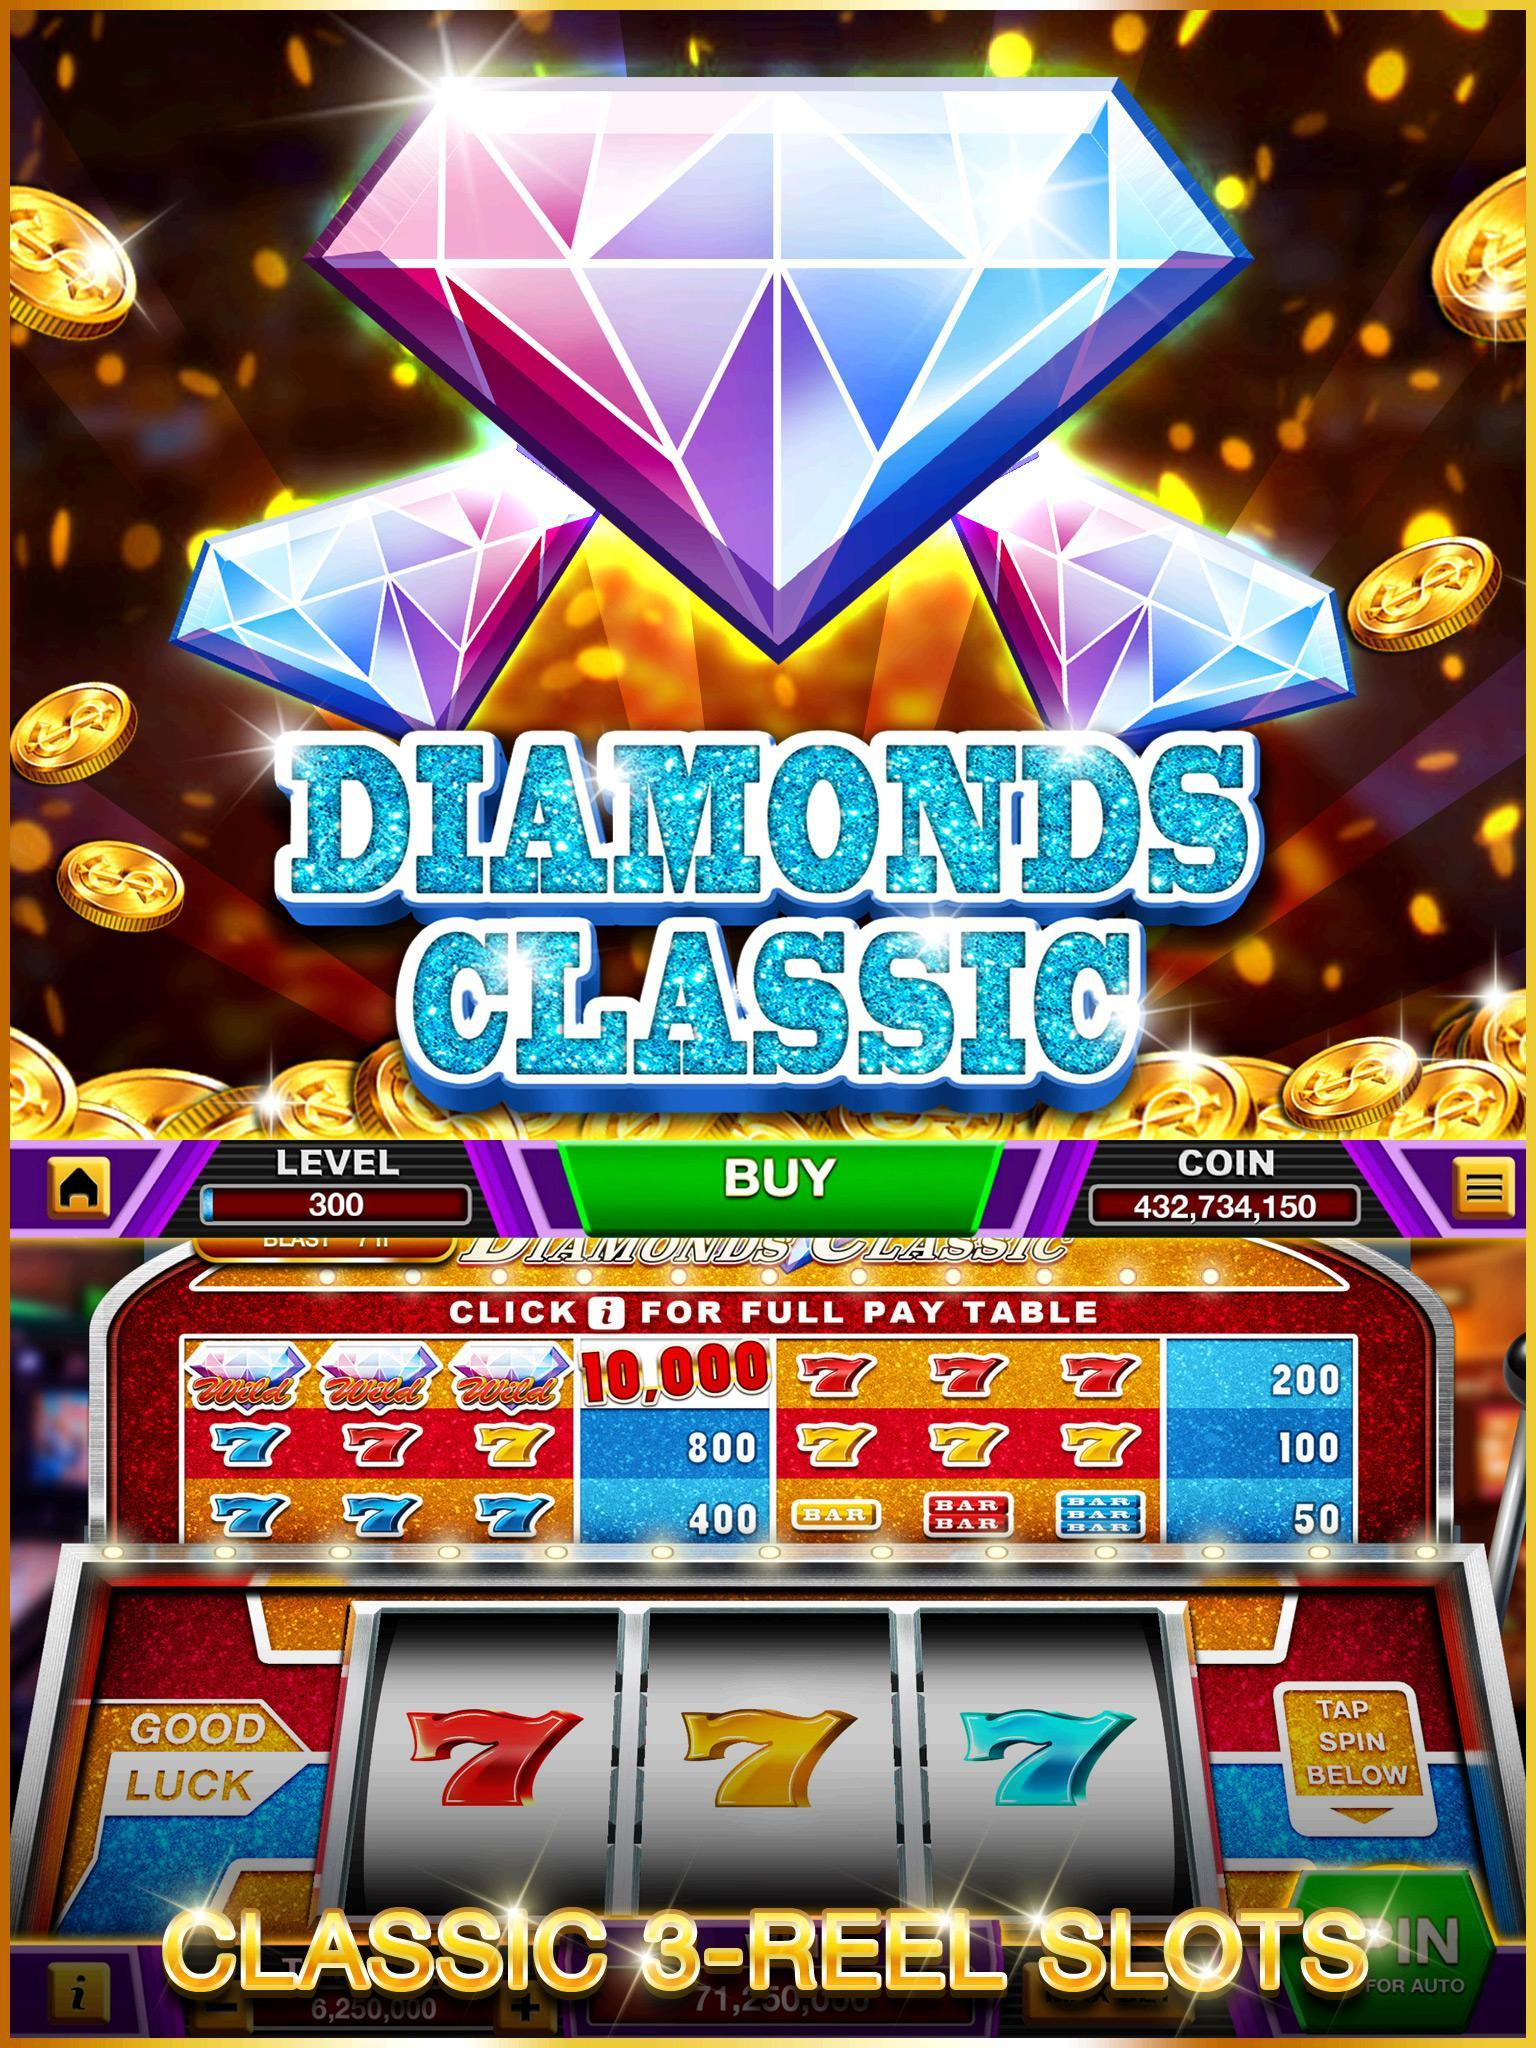 Super Slot Casino Free Download